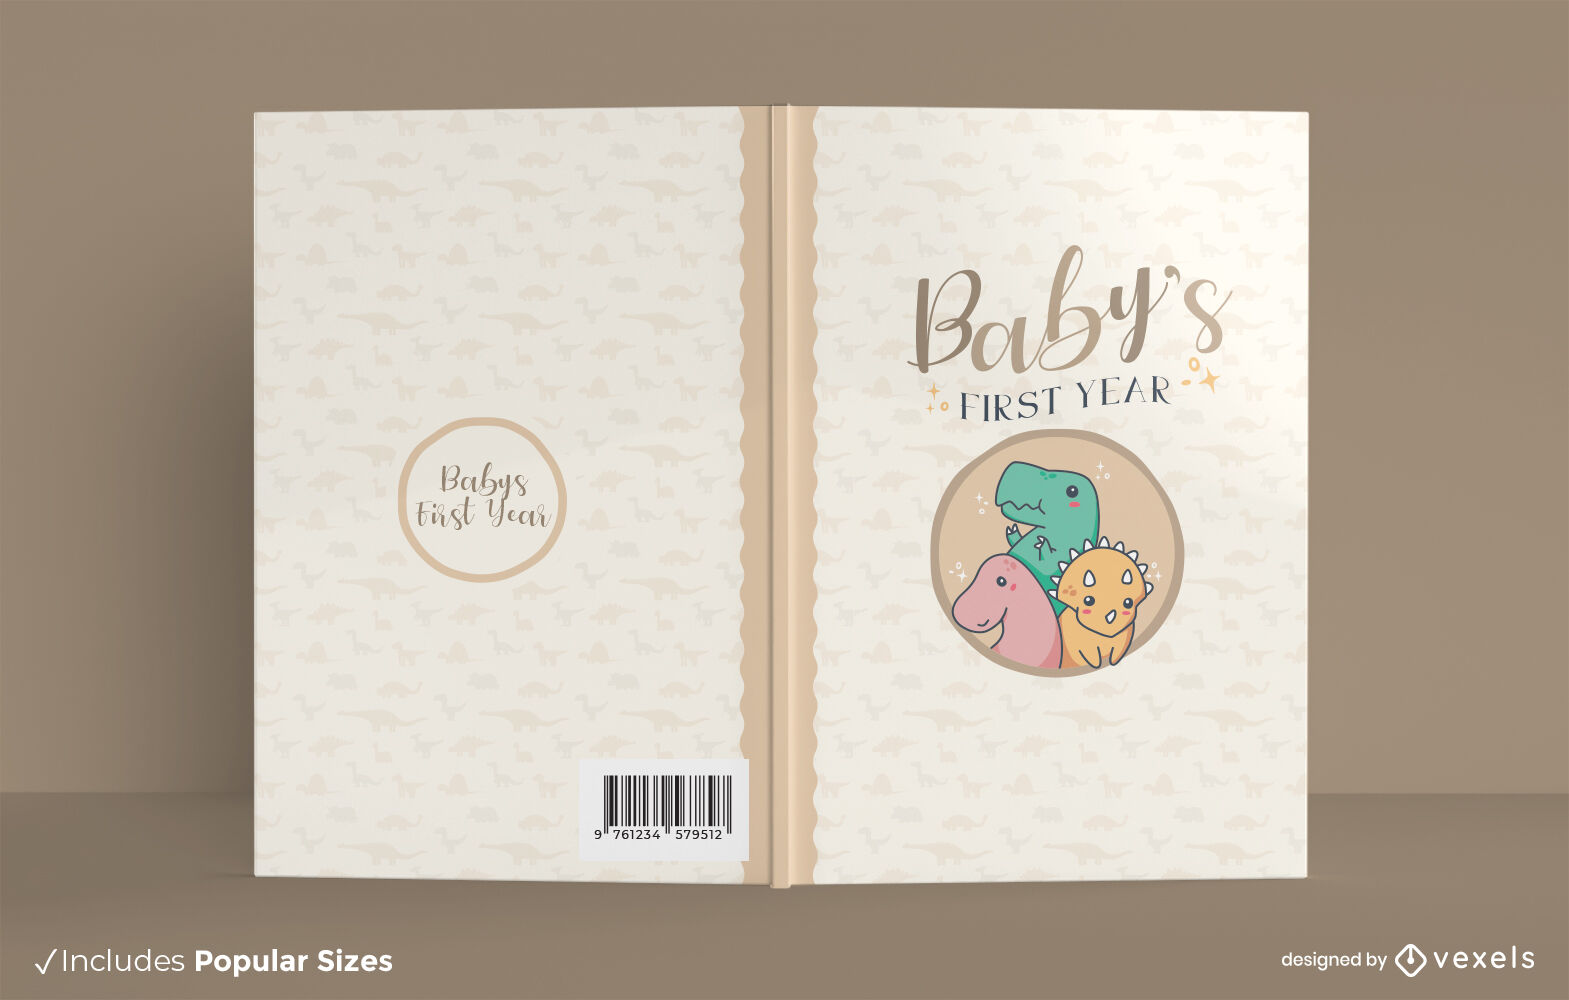 Baby dinosaurs cute book cover design